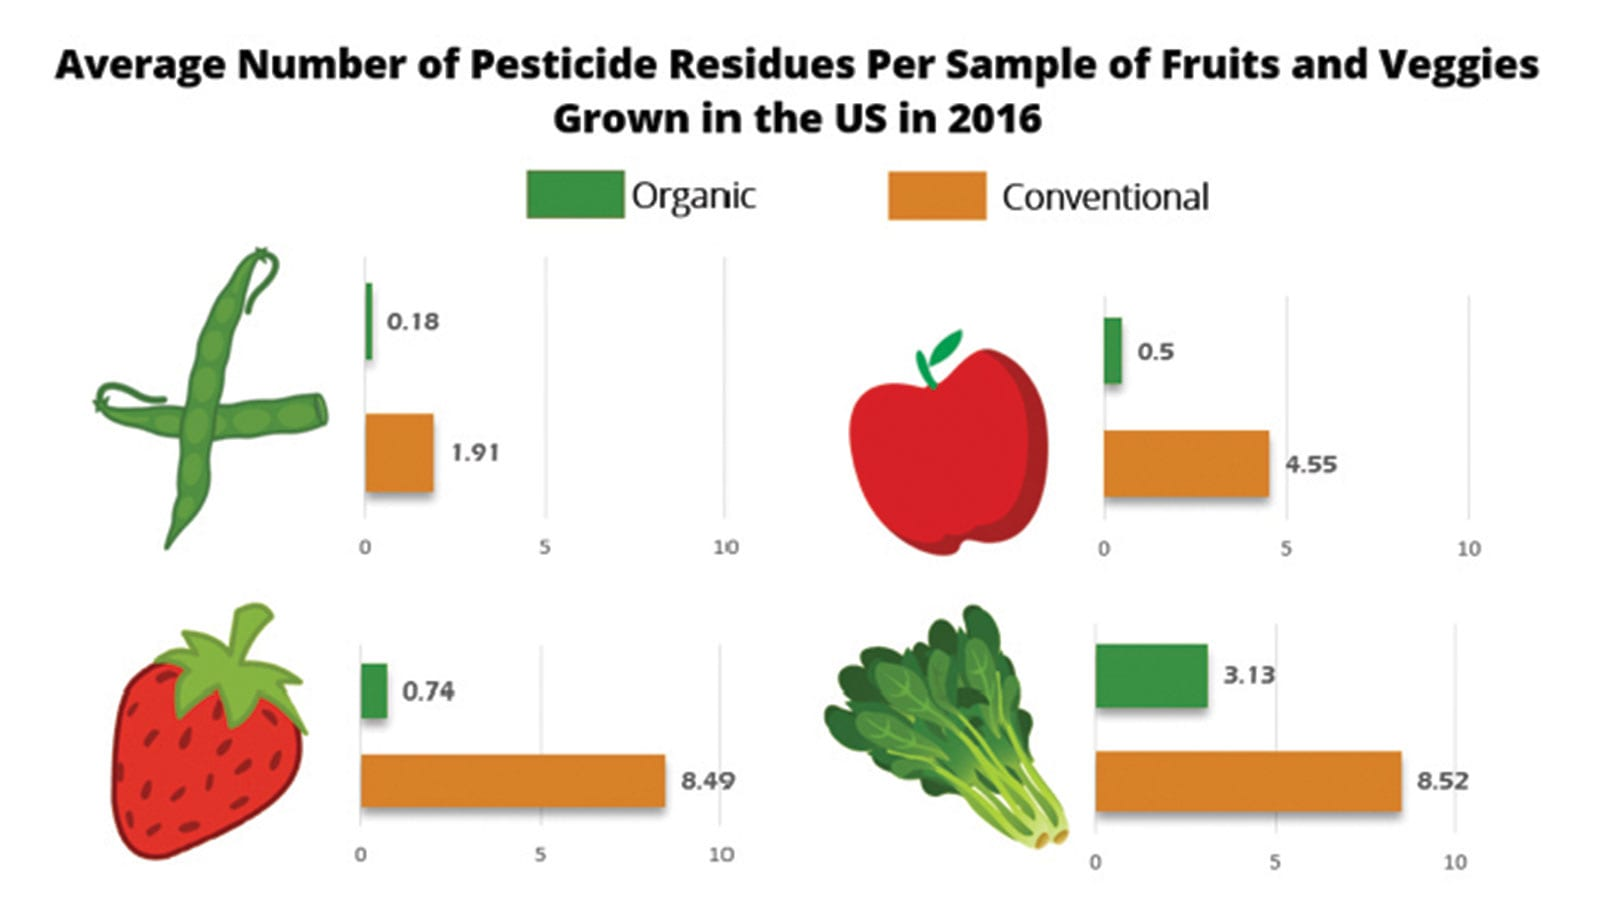 Average Number of Pesticide Residues Per Sample of Fruits and Veggies Grown in the U.S. in 2016. Data from the Dietary Risk Index at Hygeia Analytics.